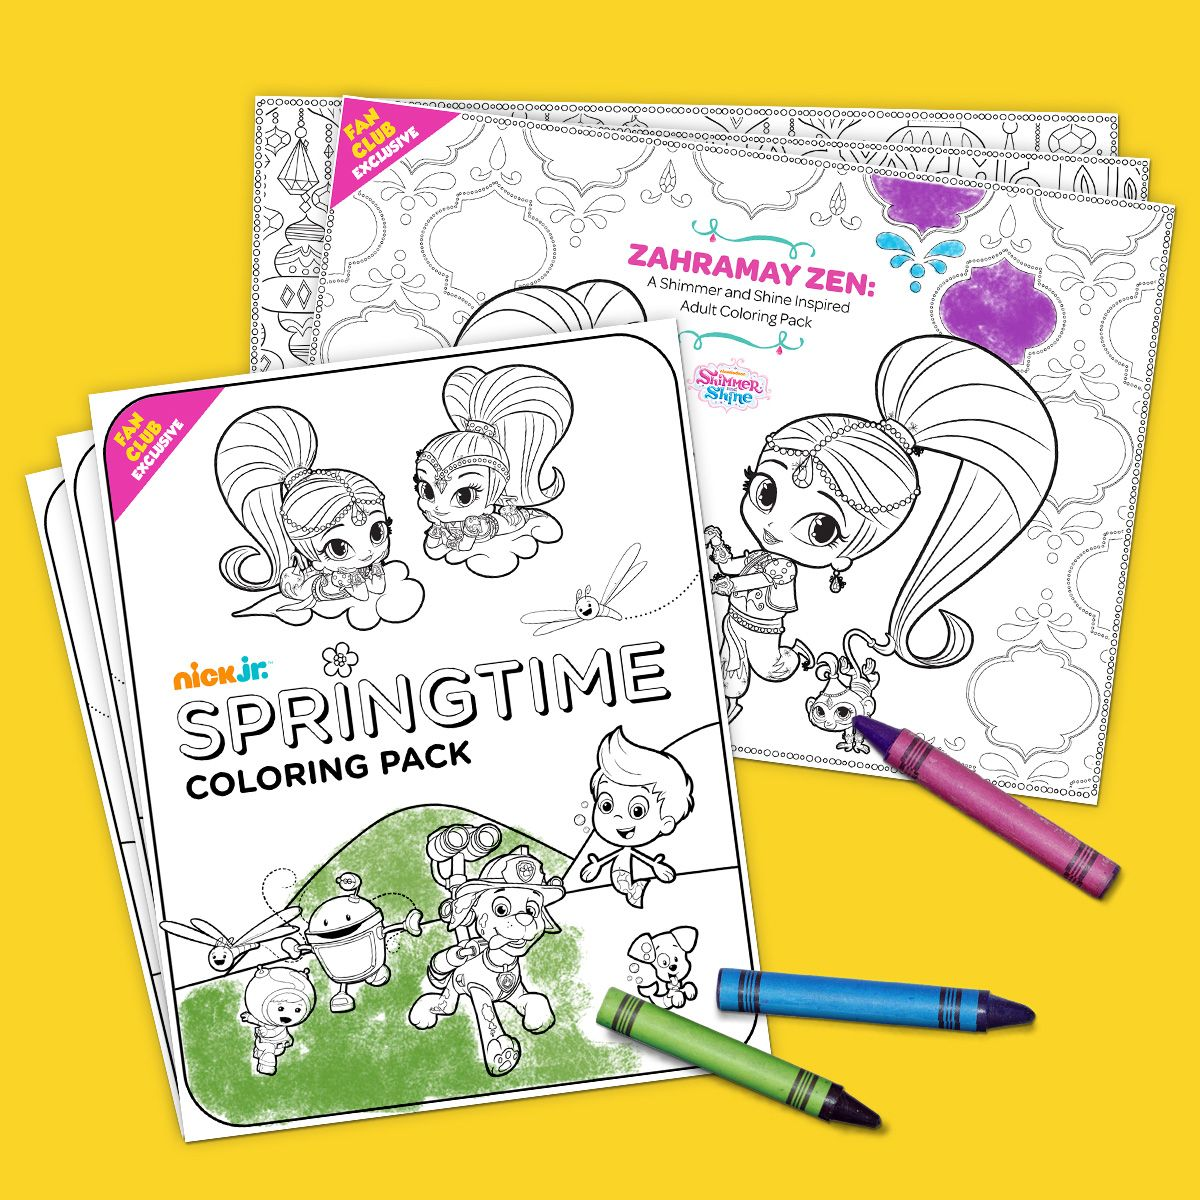 Nick jr print pages to color - Fan Club Exclusive Springtime Coloring Pack Kids Coloringadult Coloring Pagesnick Jrspring